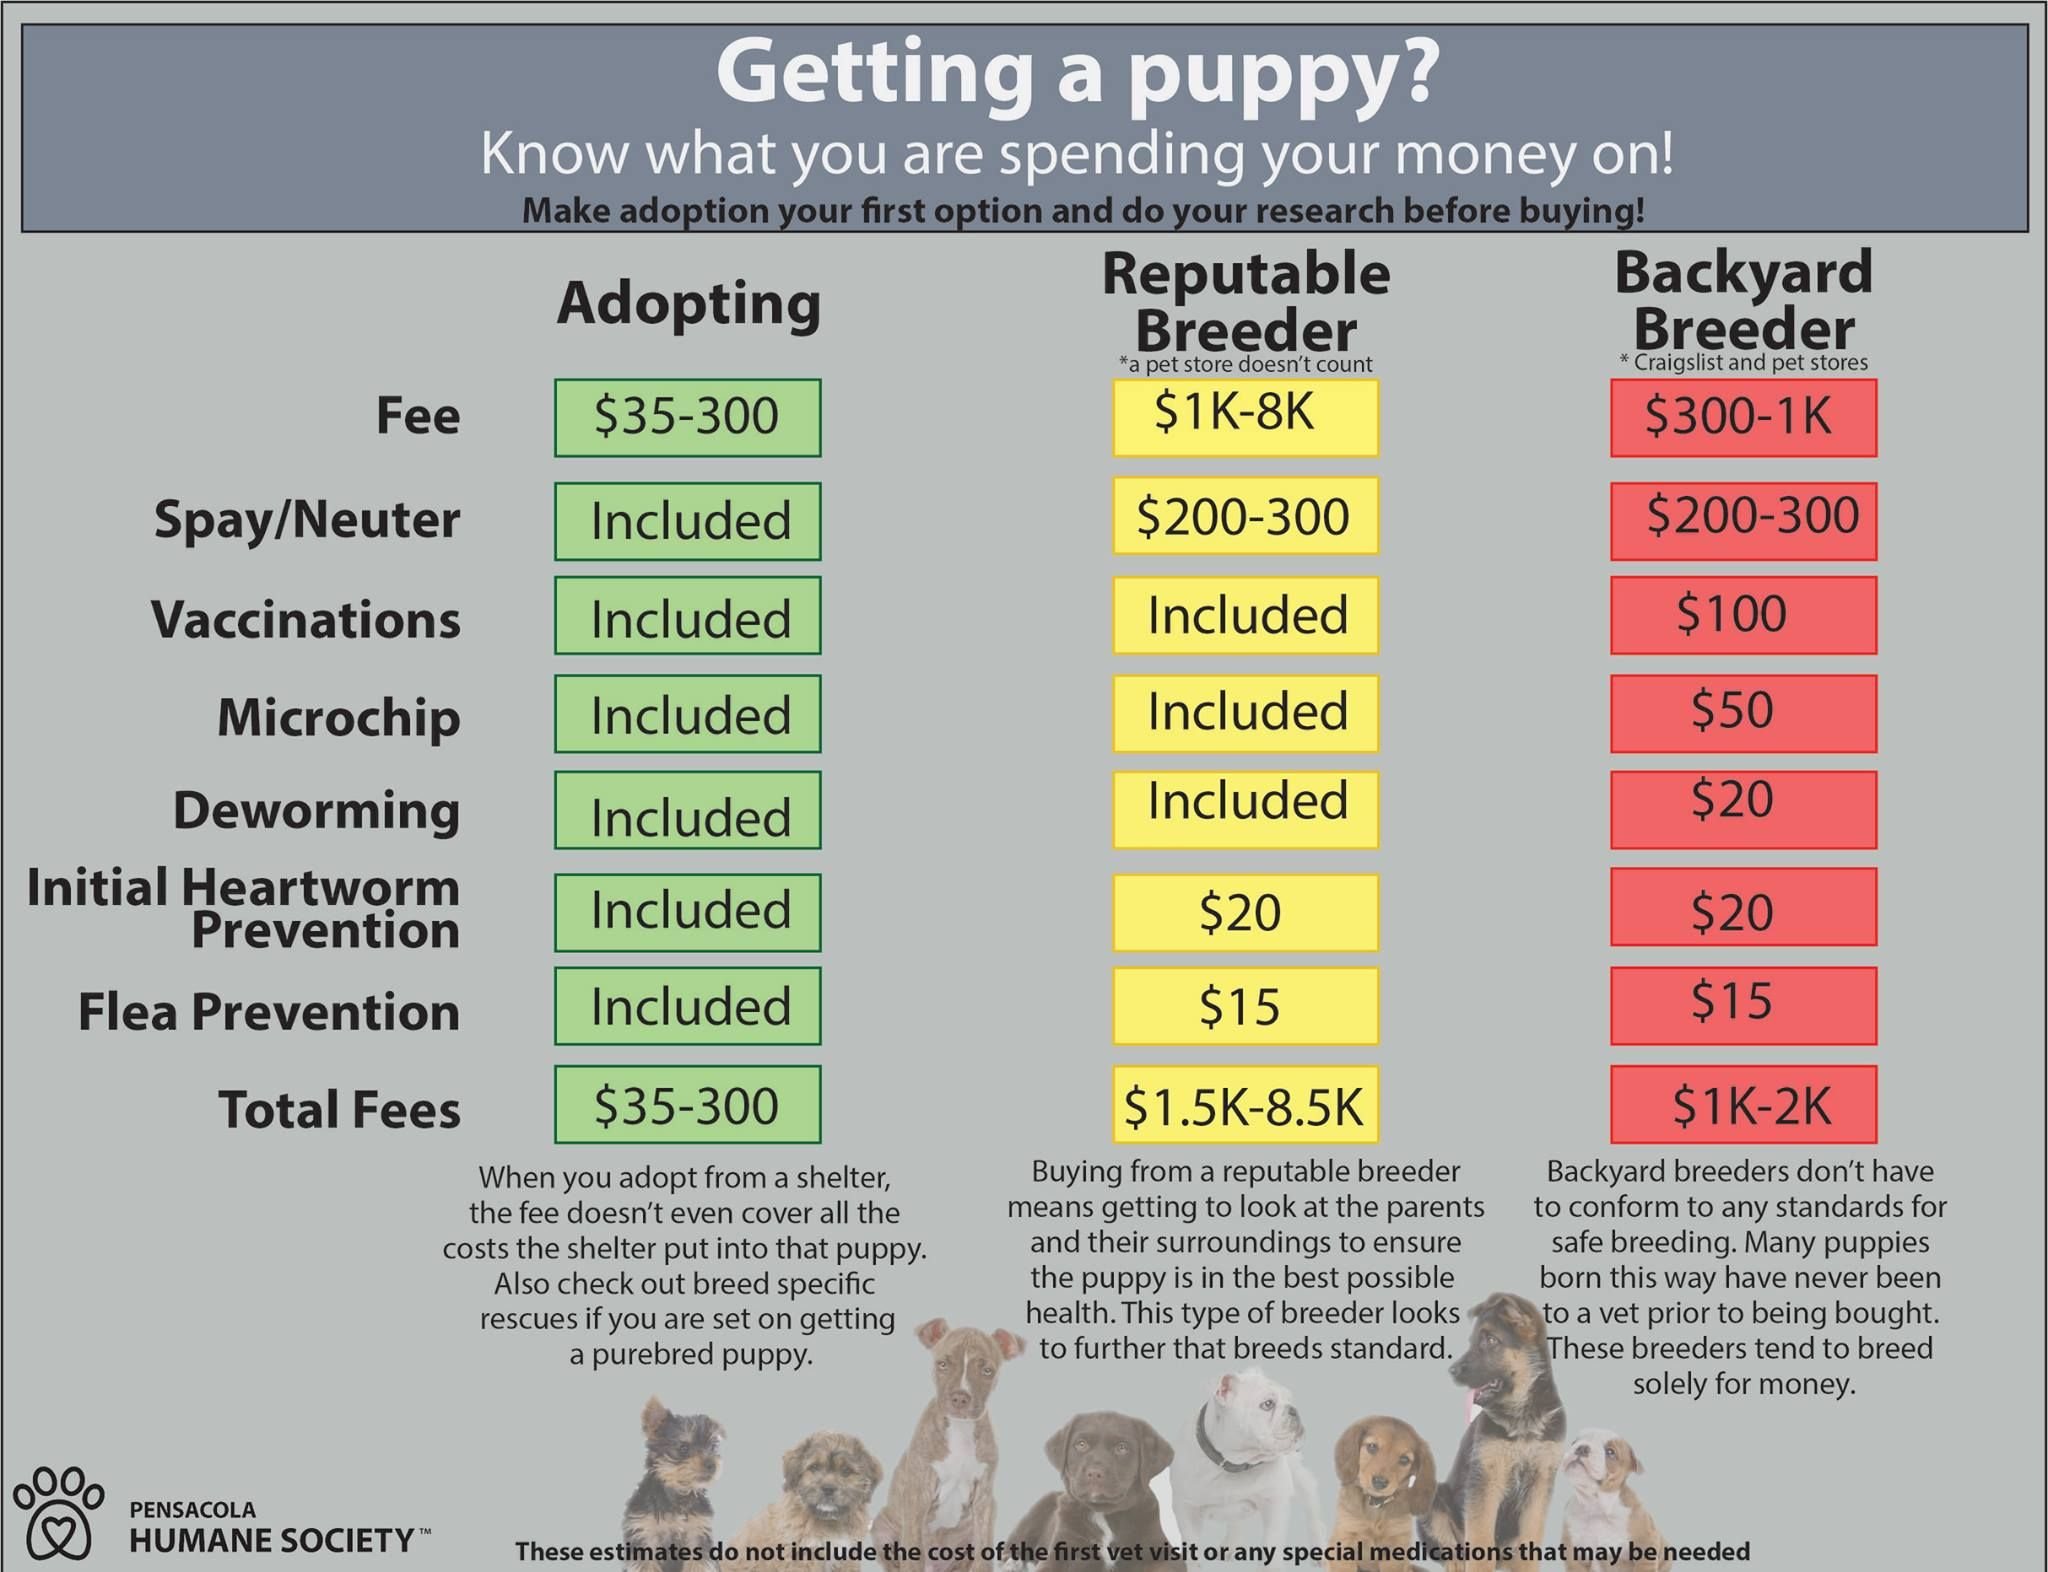 Shelter Adoption vs. Breeder Buying Getting a puppy